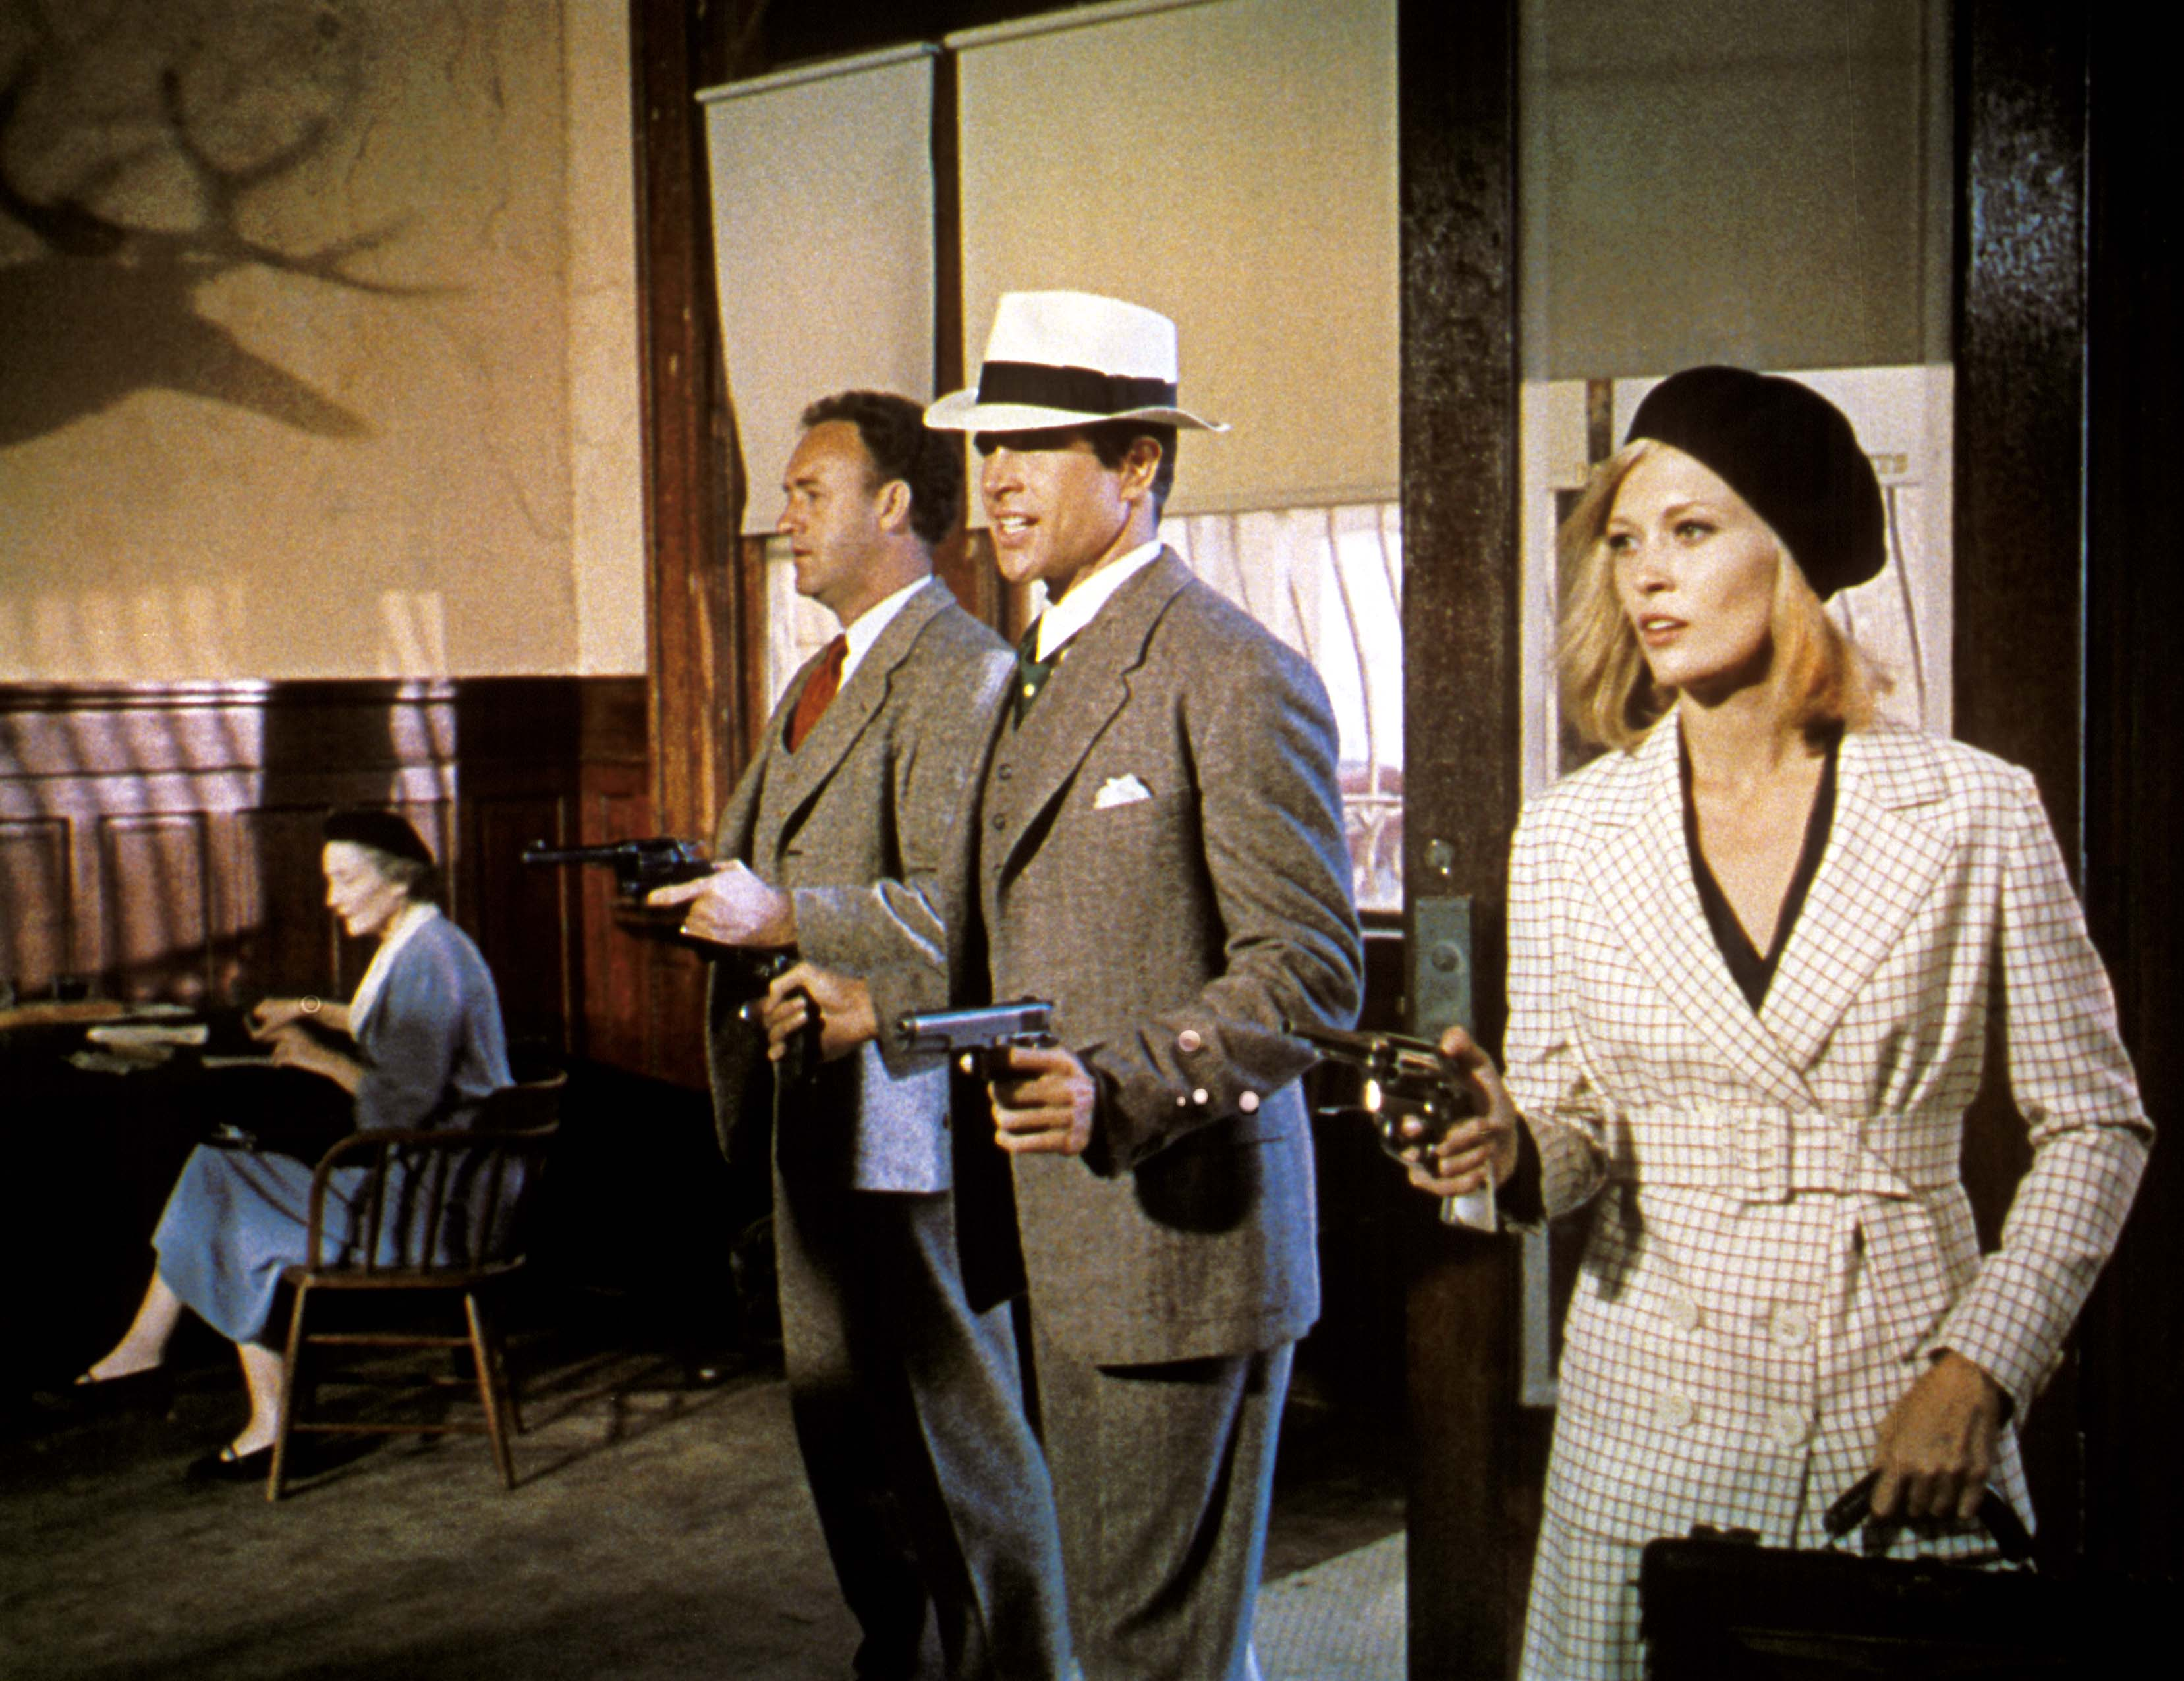 Bonnie and Clyde ©1967 – All rights reserved. Courtesy Warner Bros. Home Entertainment, Inc.